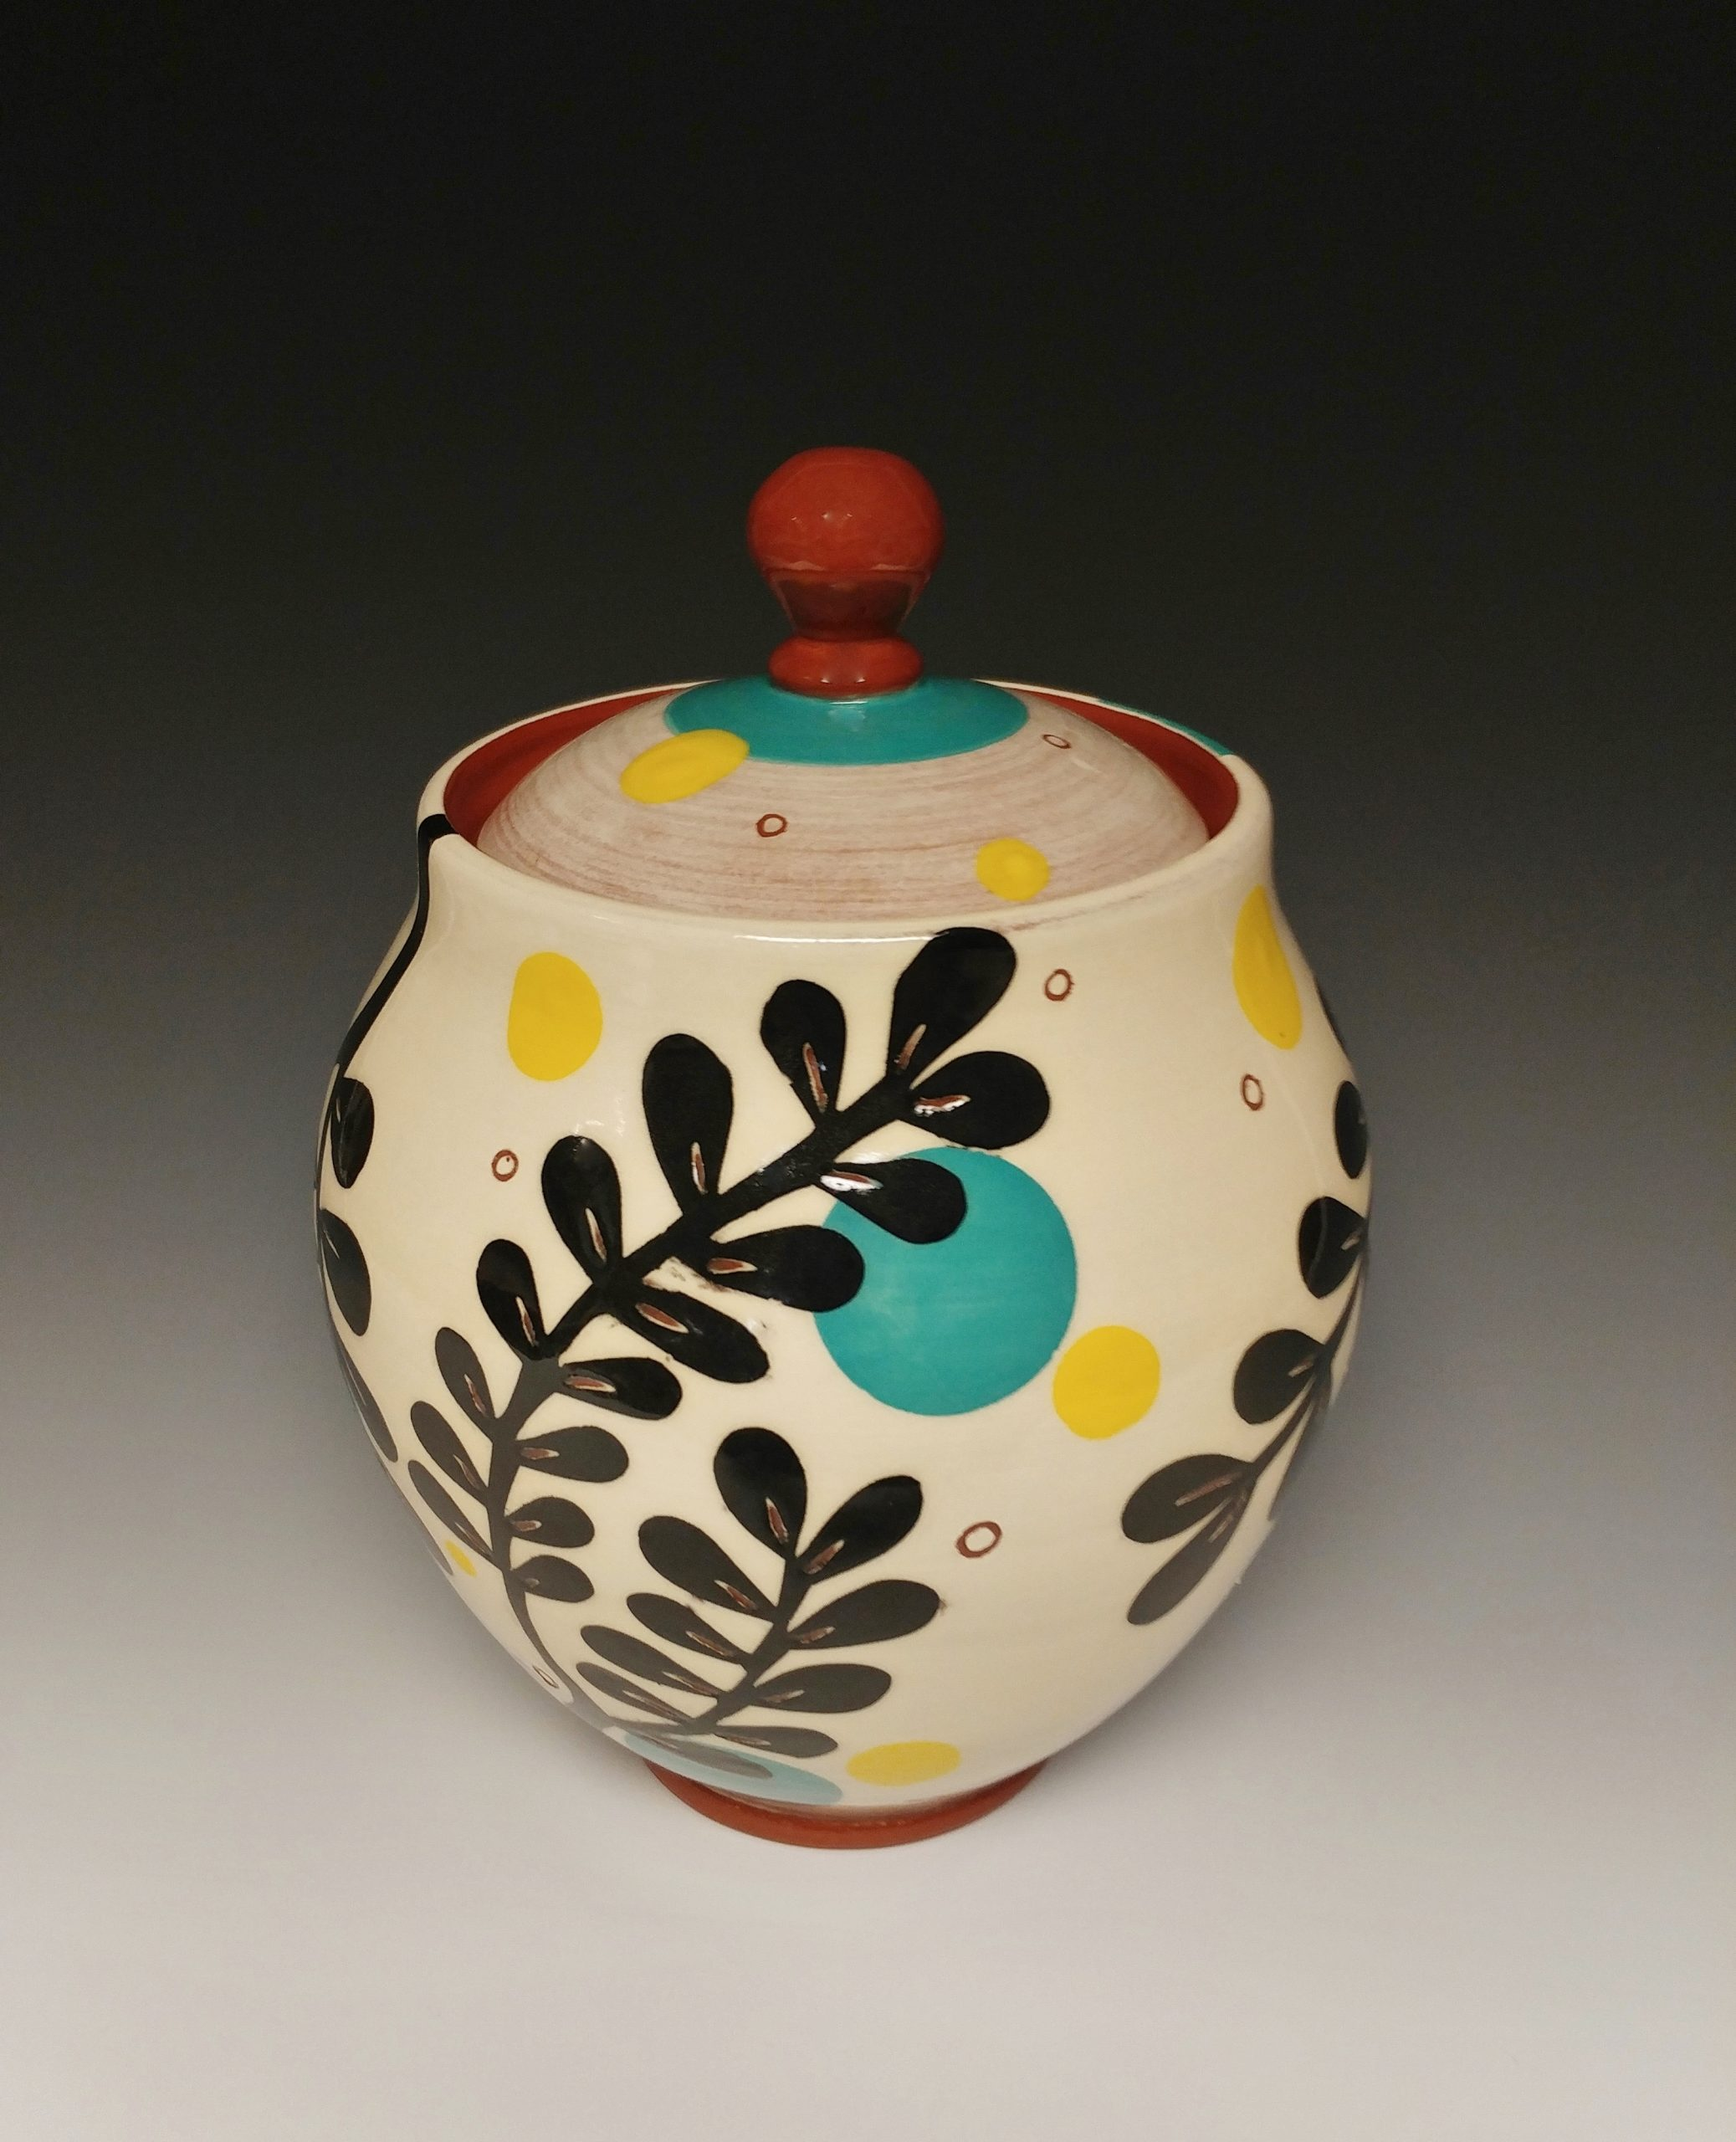 Leafy Lidded Jar with Black Cutouts and Yellow Dots